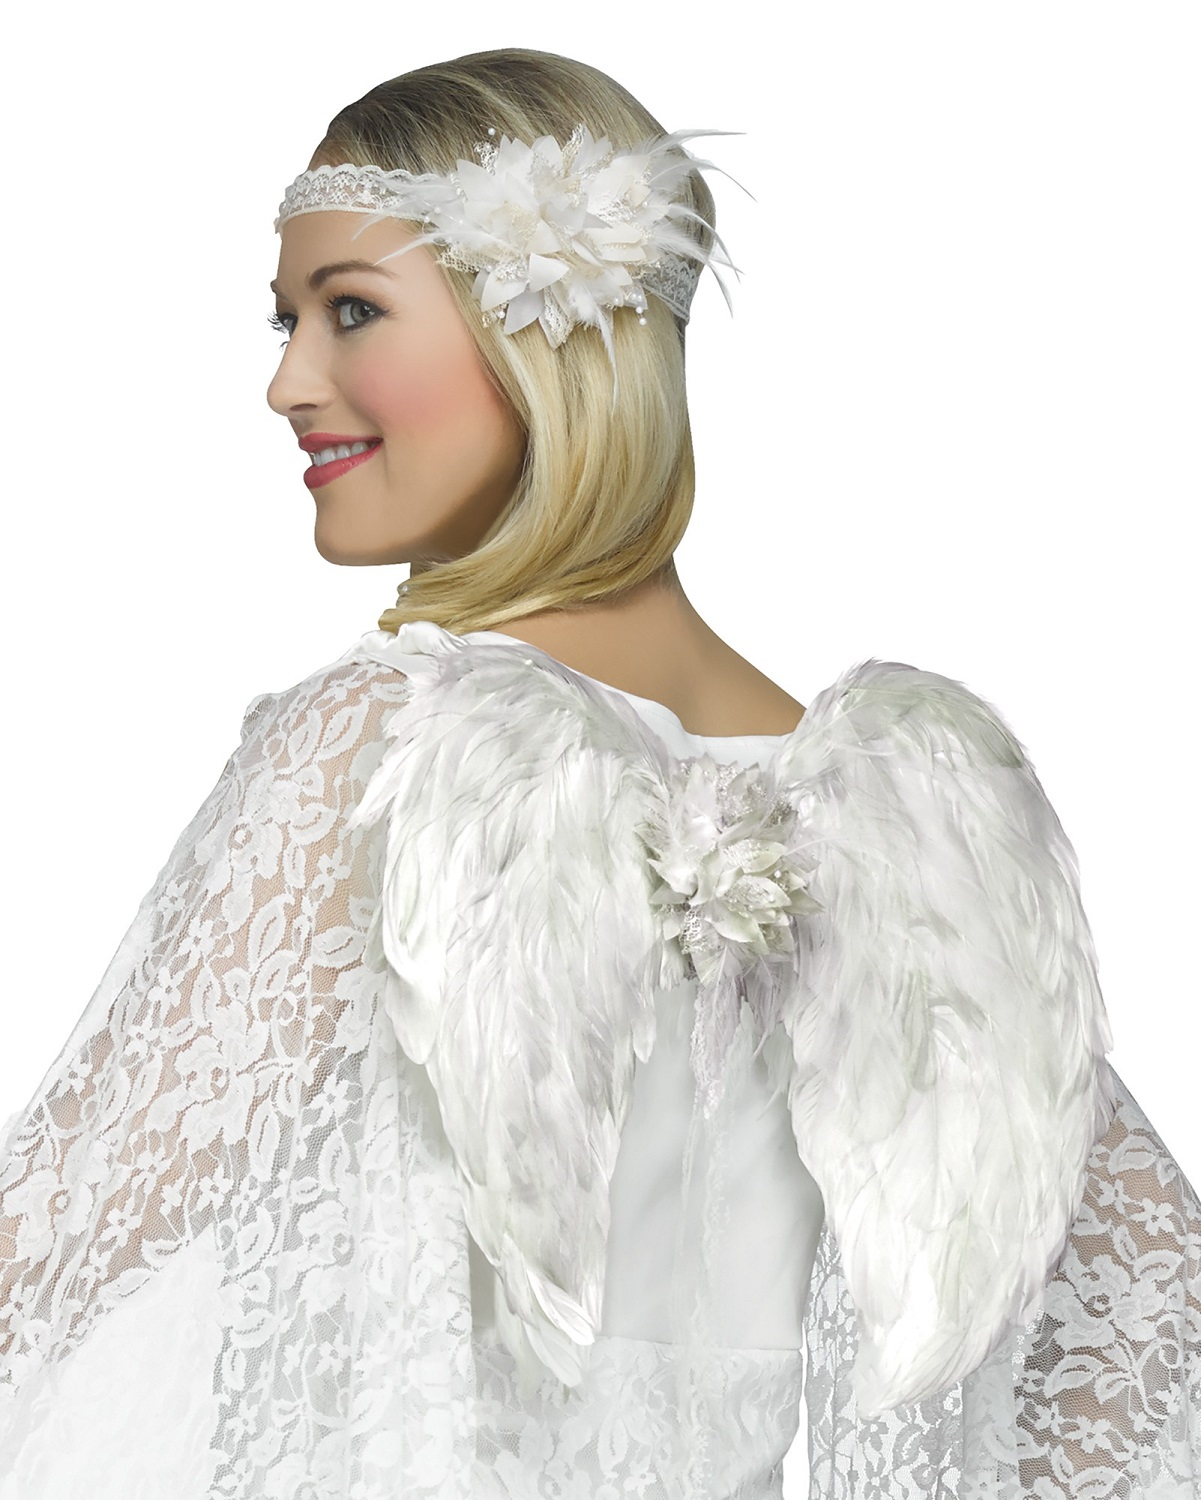 Lace Instant Angel Costume Kit Flower Headband White Wings Accessory